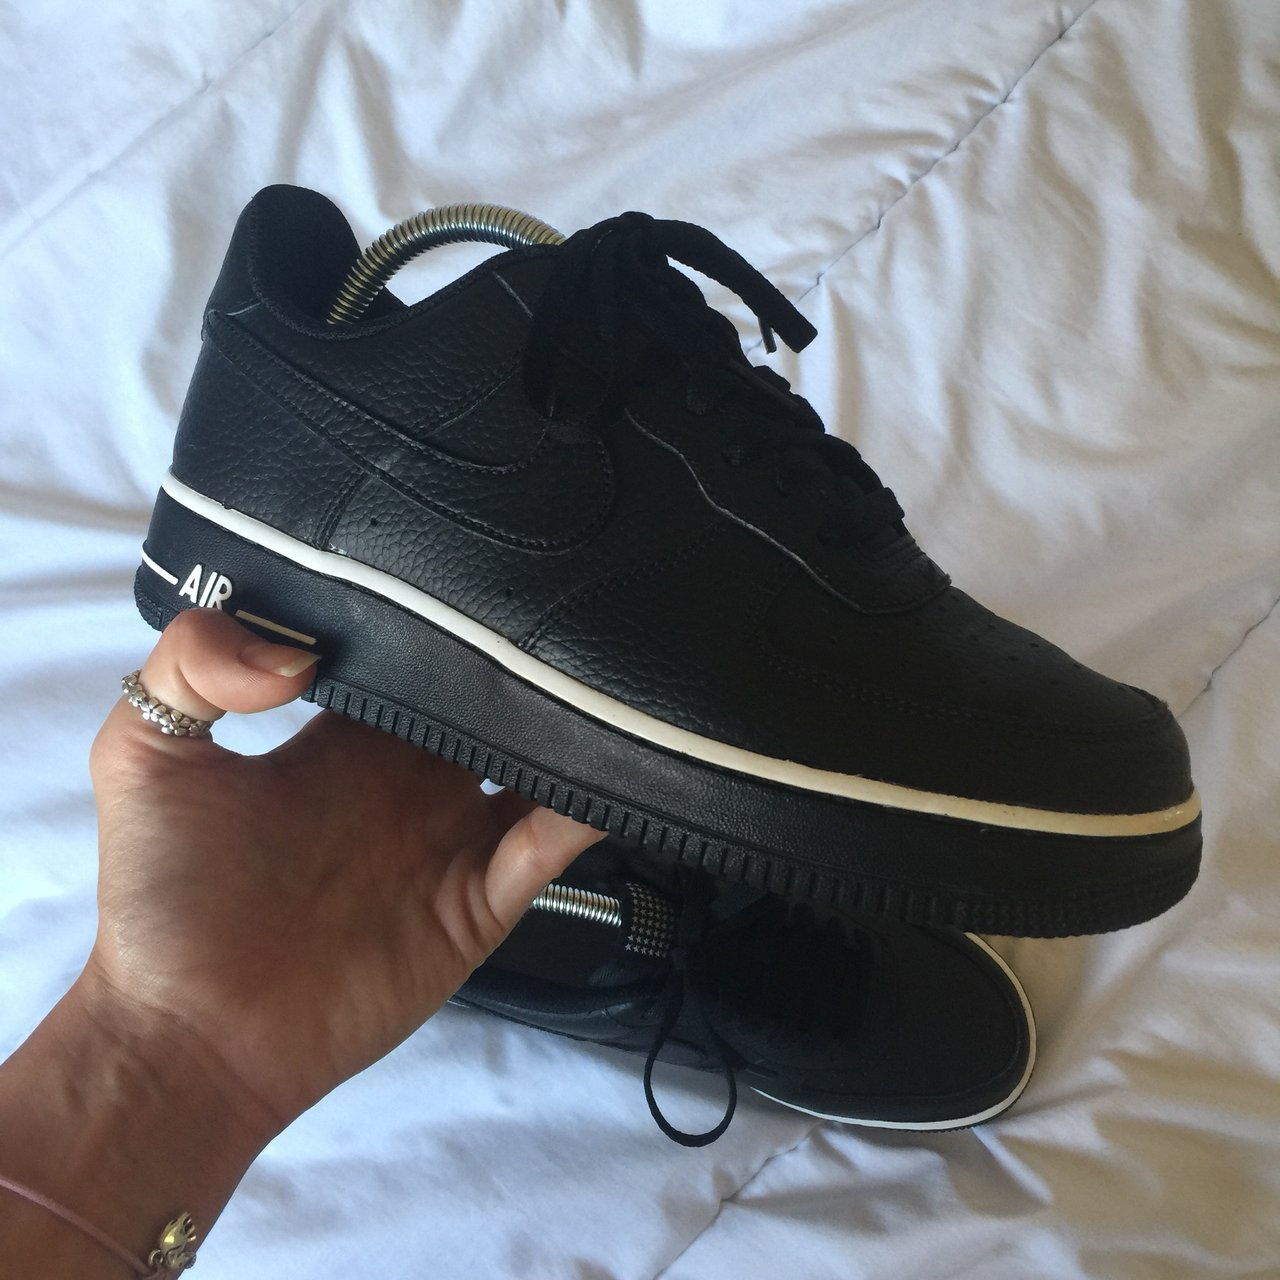 best loved 46110 1fbdc ellierosecarter. 9 months ago. Chelmsford, United Kingdom. Black and white nike  air force 1 07 pivot ...